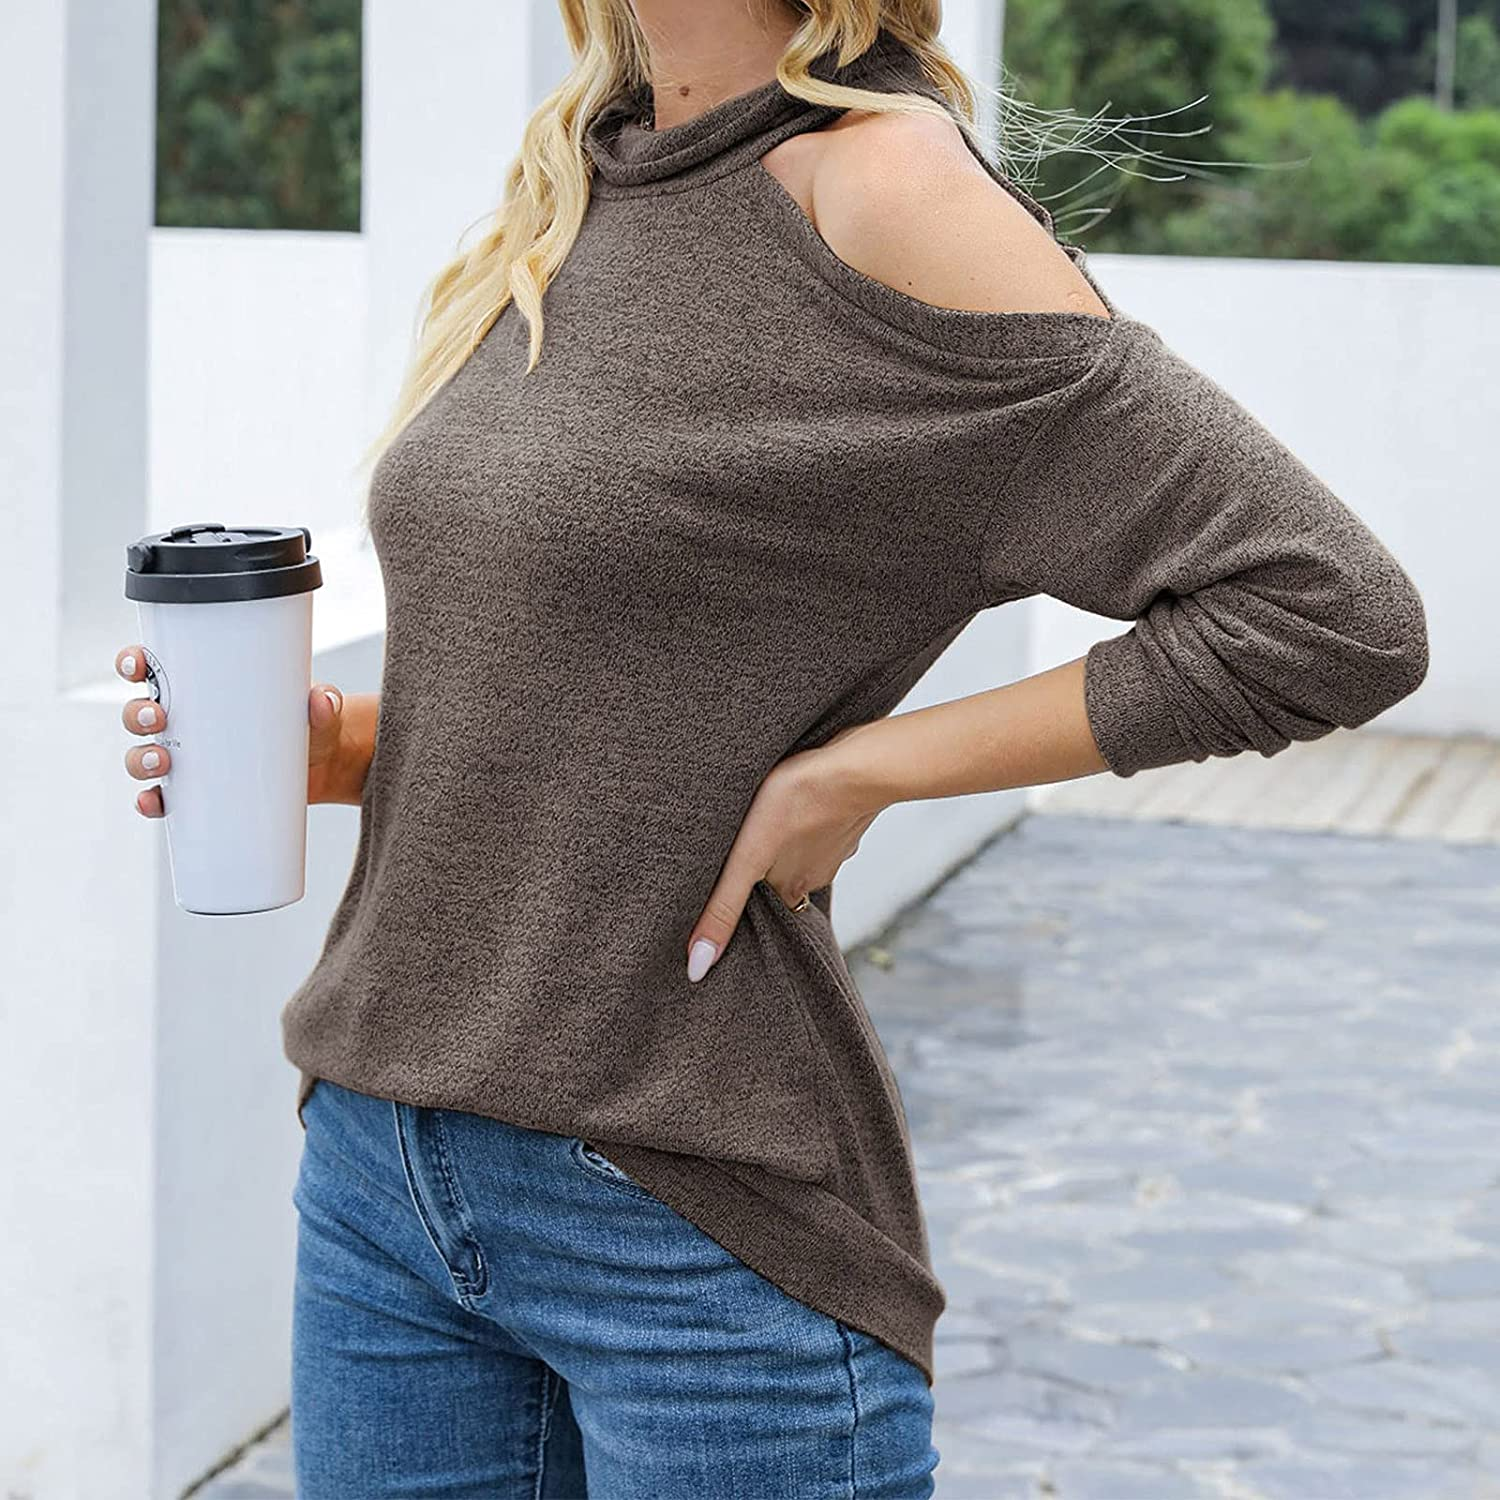 Tops for Women Off-Shoulder Sexy Long Sleeve Small High-Necked Solid Color Sweatshirts Autumn Fashion Blouses